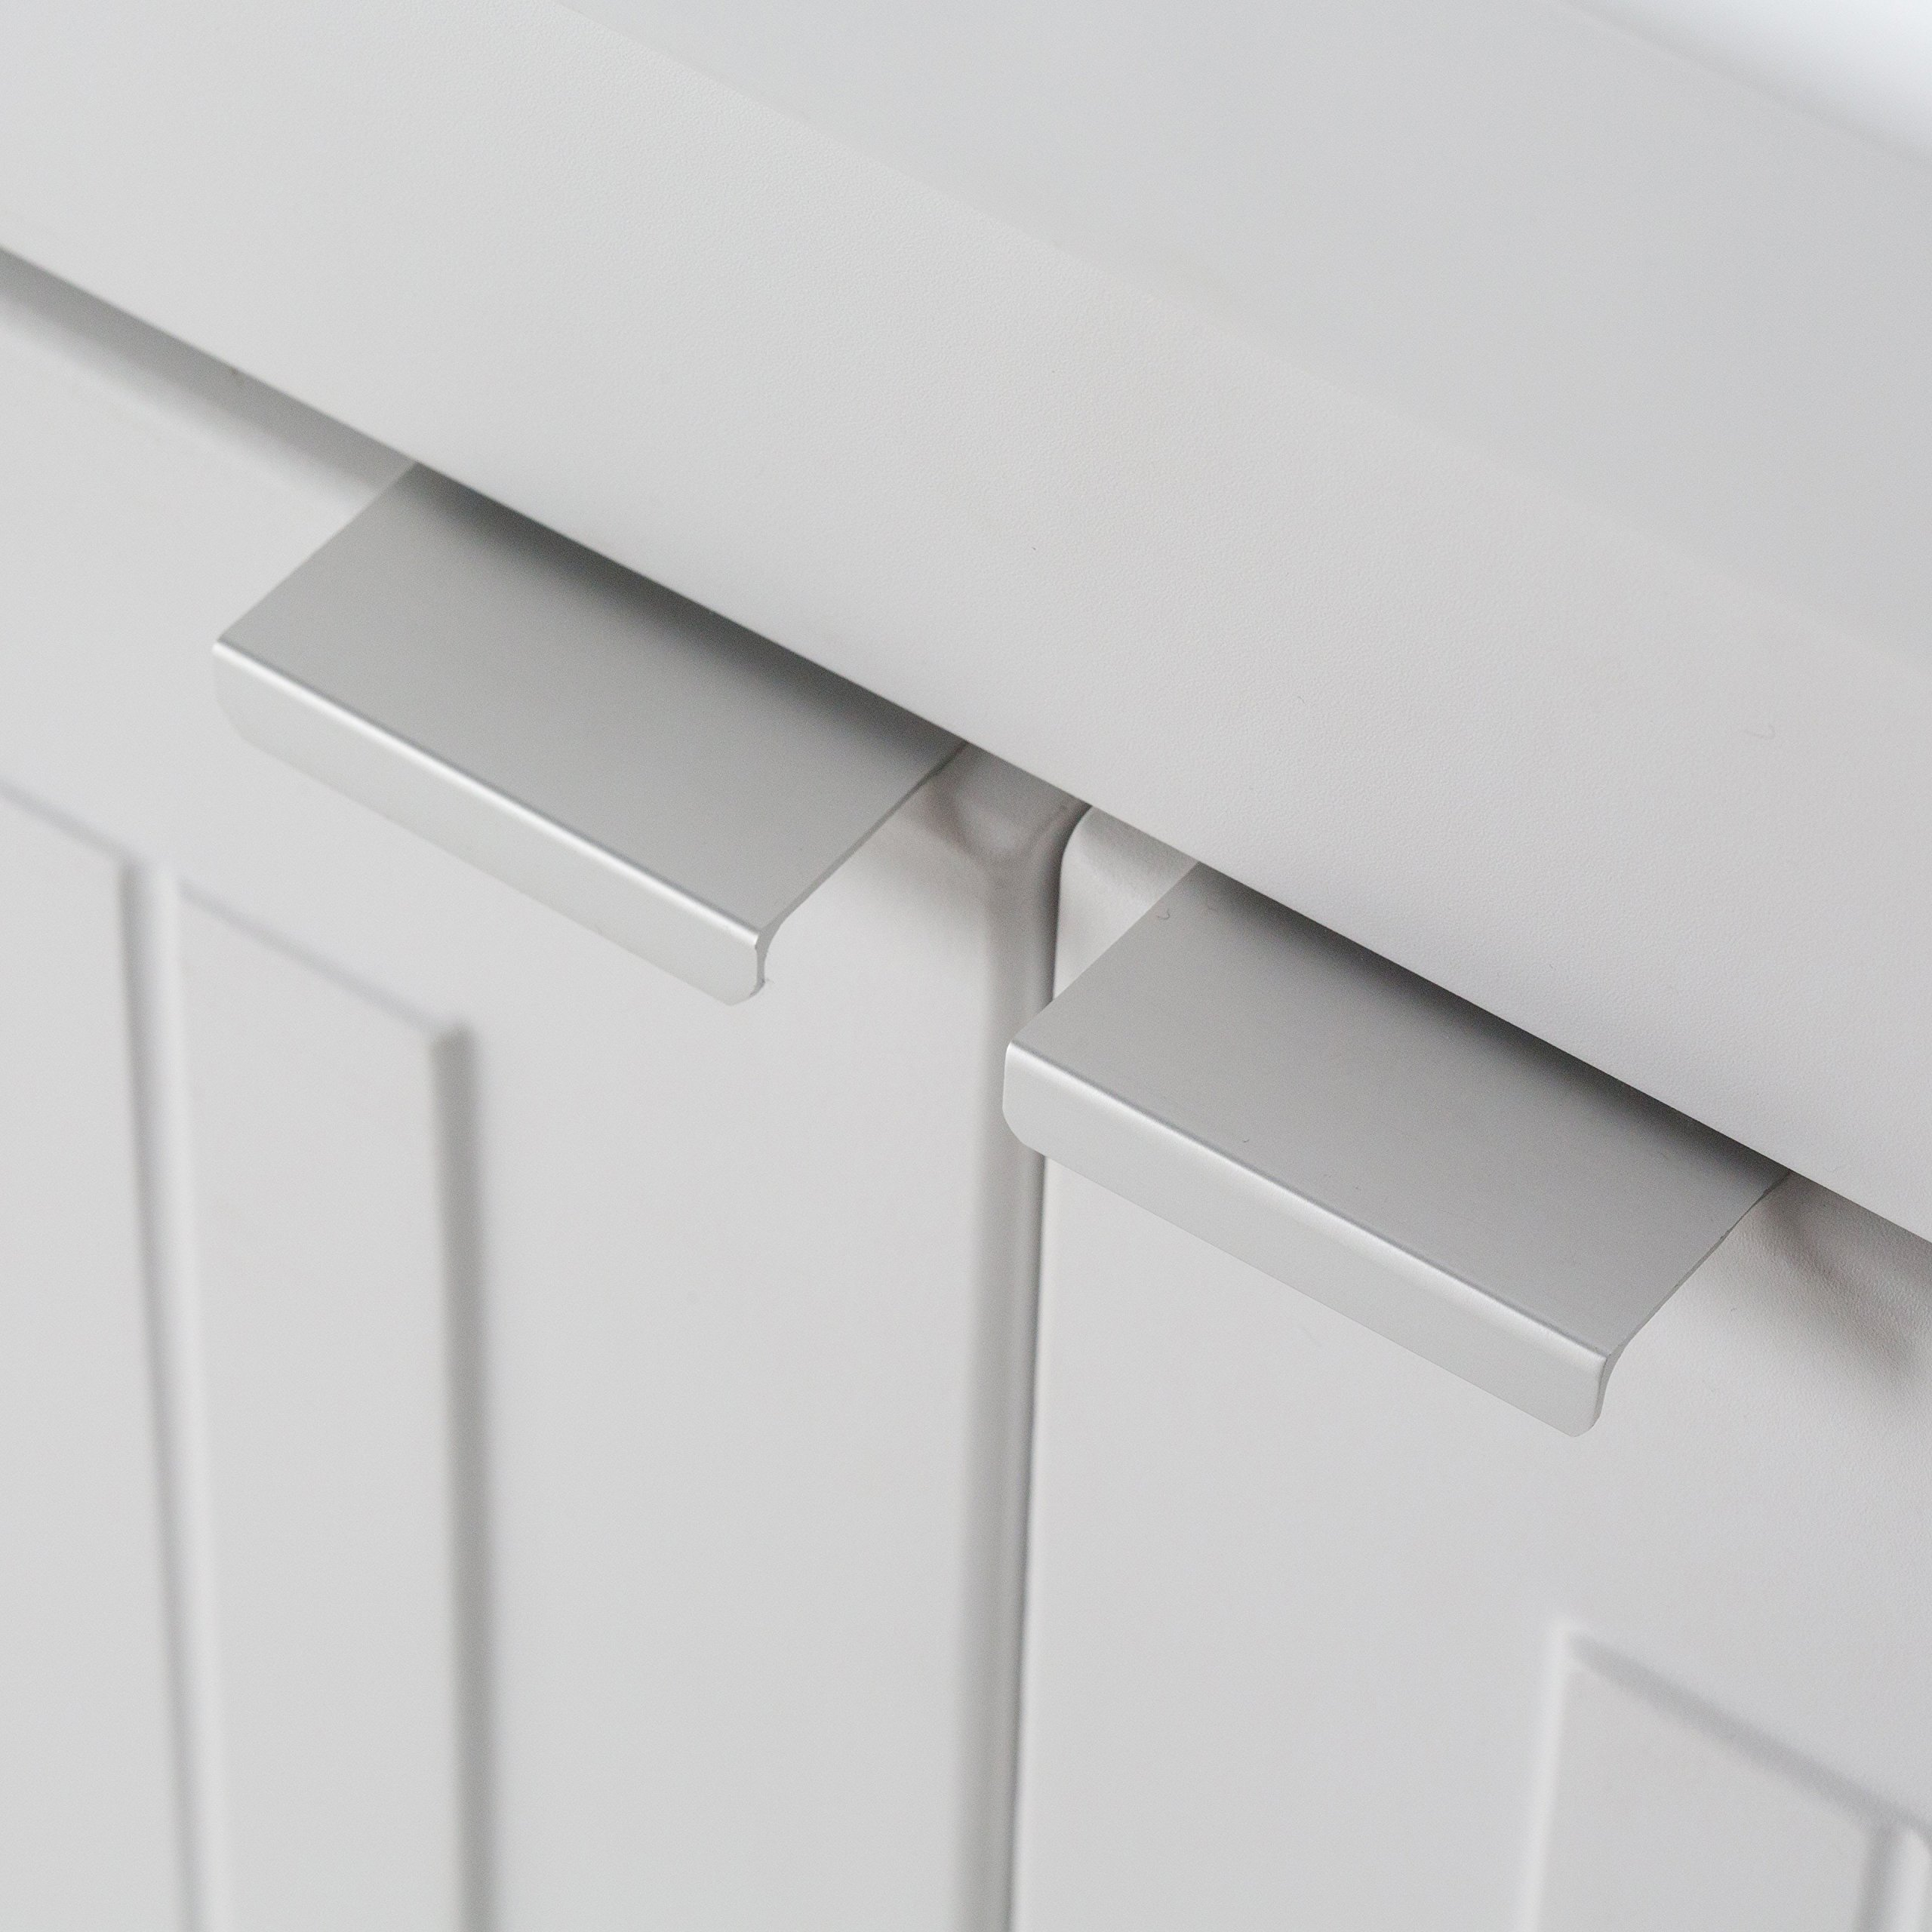 Simpli Home Murphy Laundry Cabinet with Faucet and ABS Sink, 24'', Pure White by Simpli Home (Image #6)